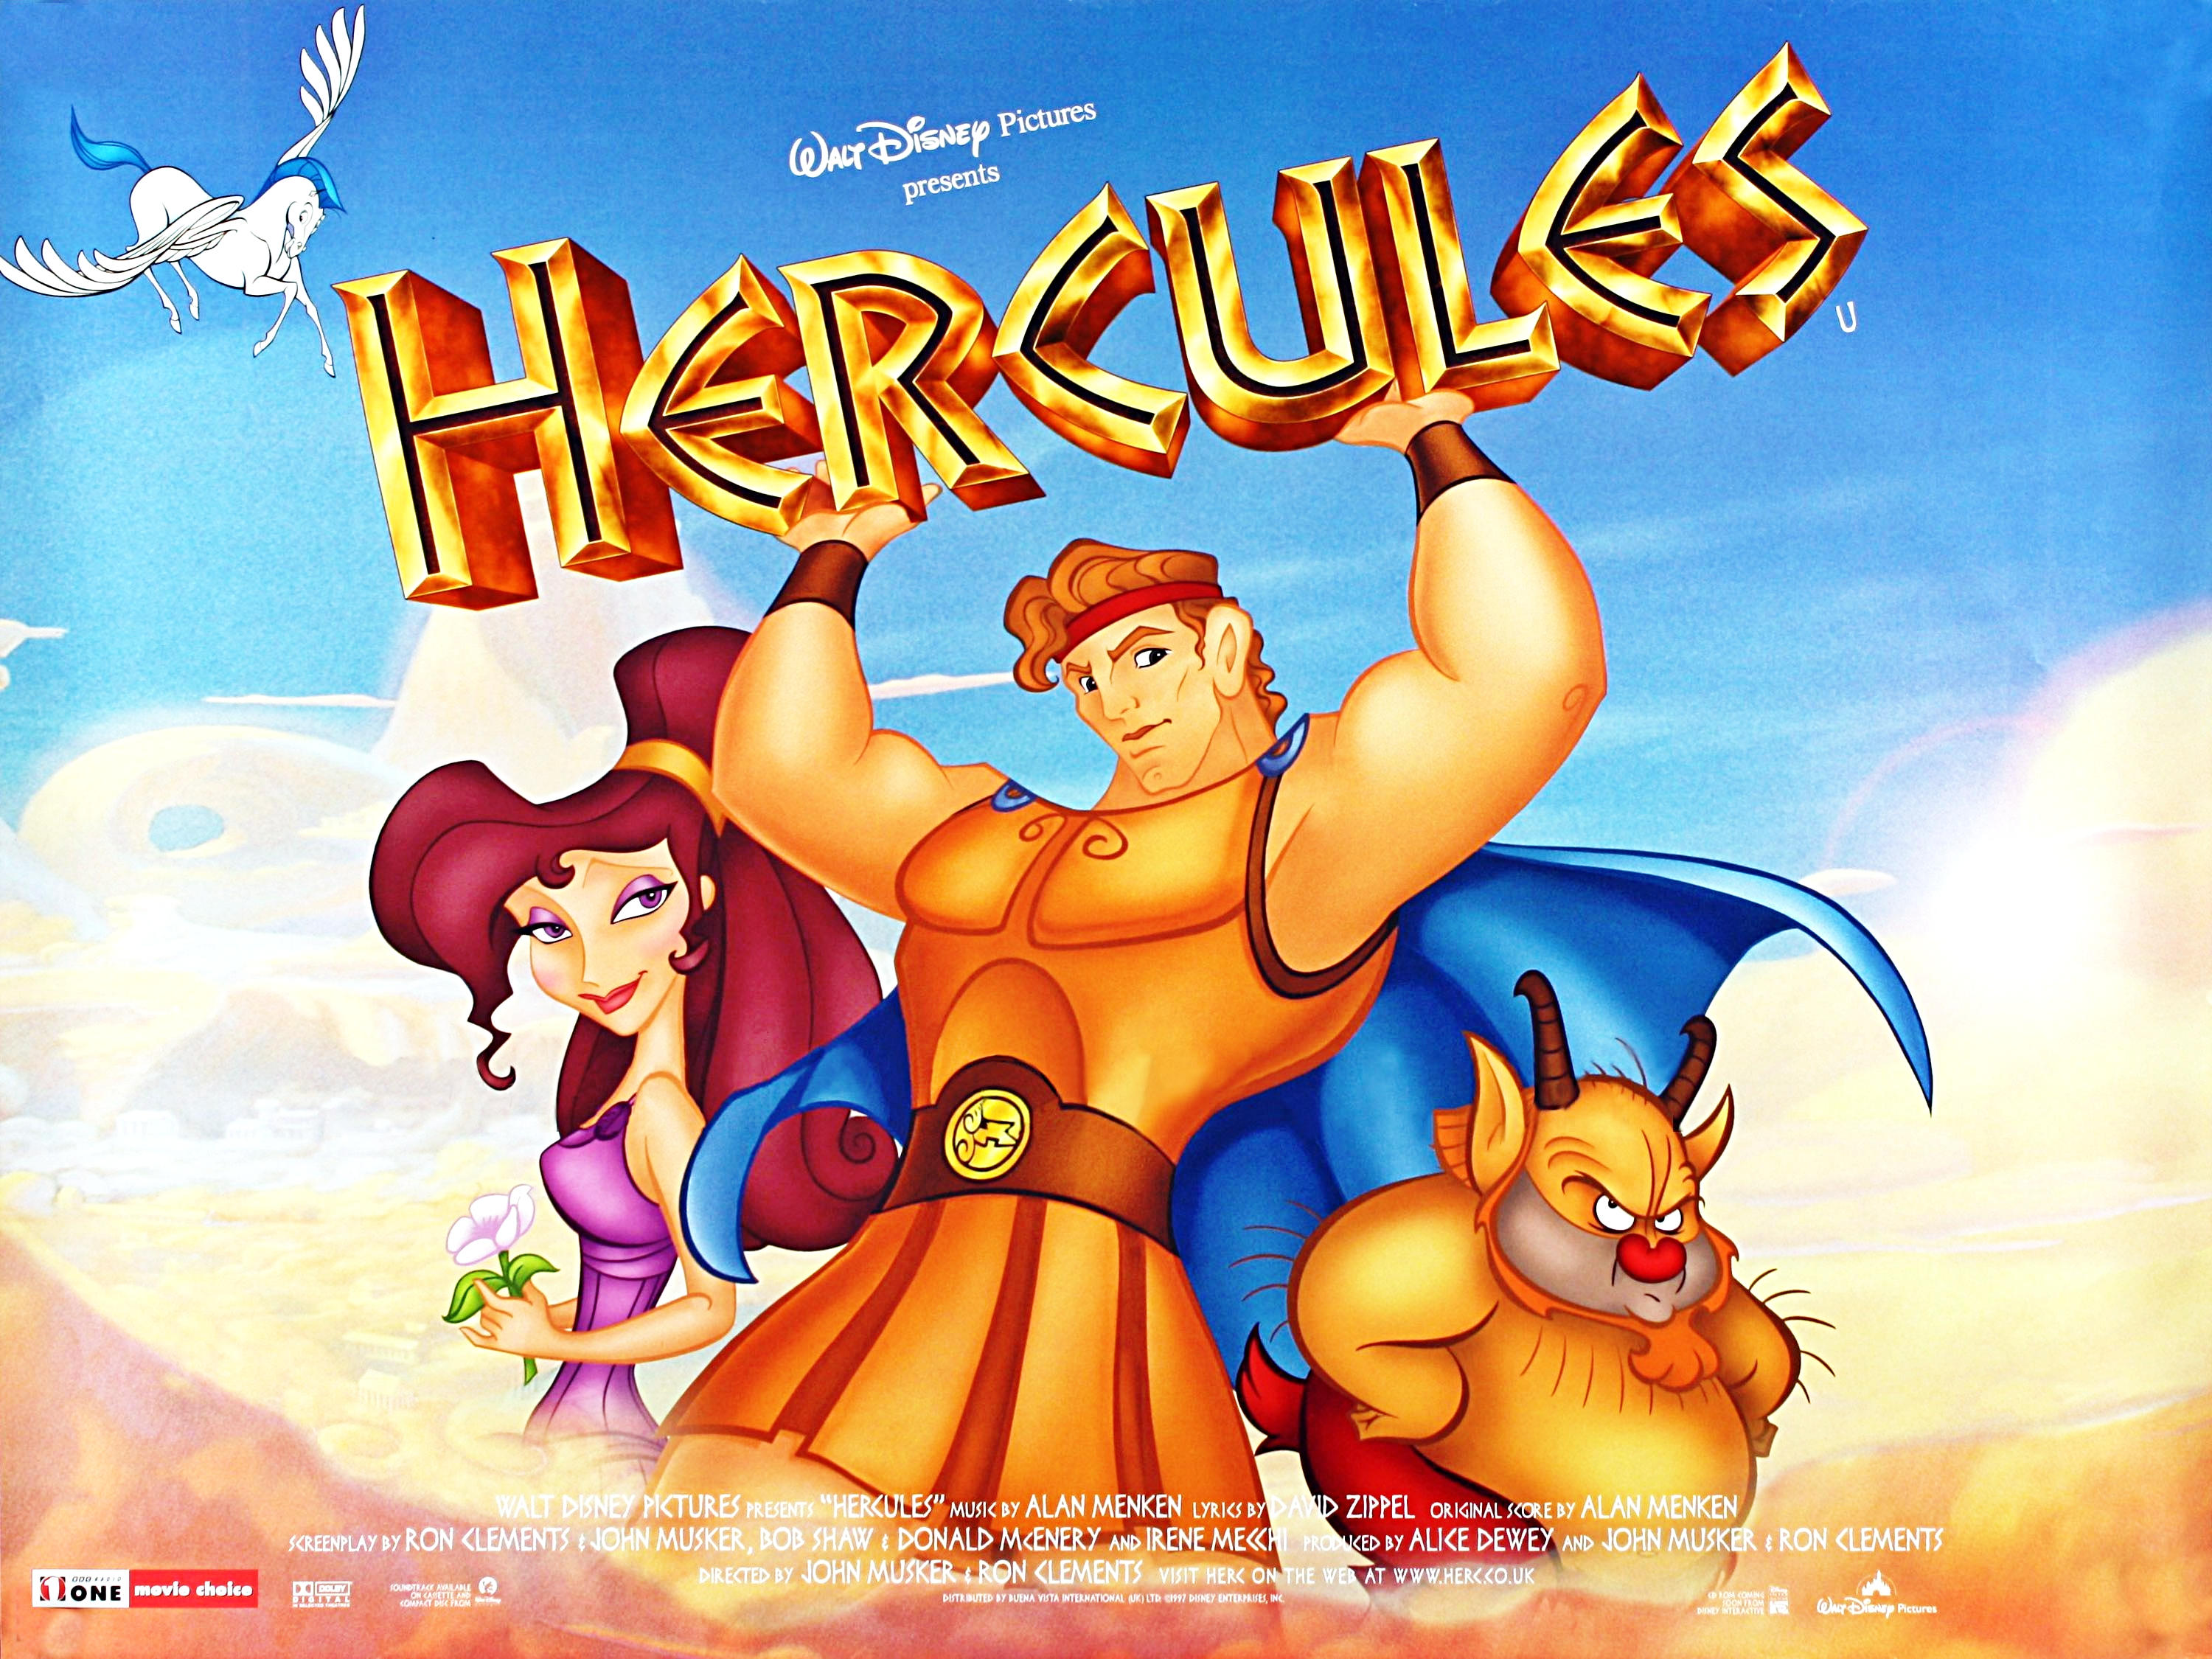 Hercules- The Disney version